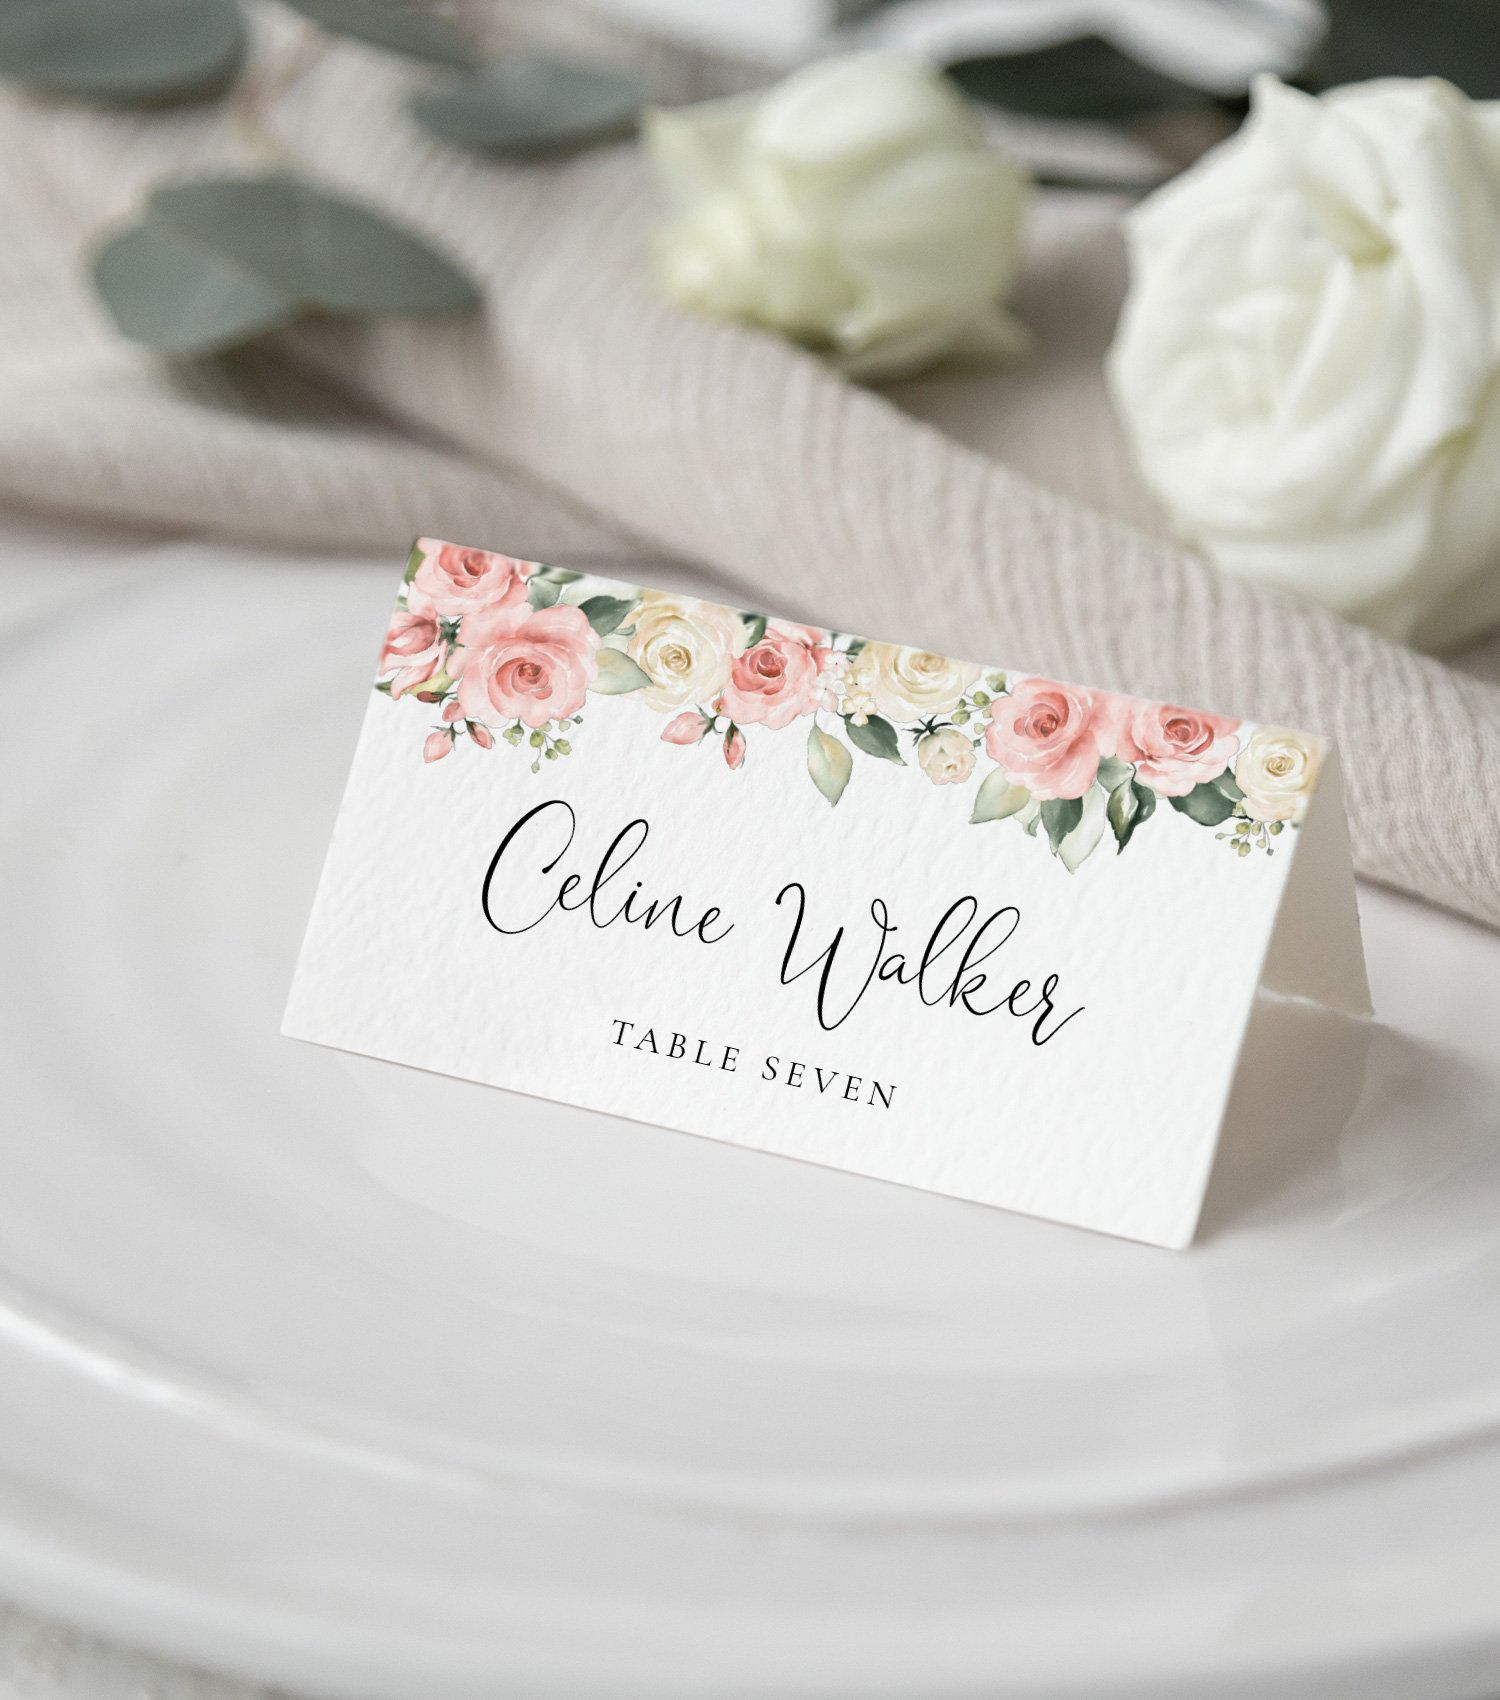 Wedding Place Card Template With Watercolor Light Pink Roses Etsy In 2021 Wedding Table Name Cards Wedding Place Cards Wedding Place Card Templates